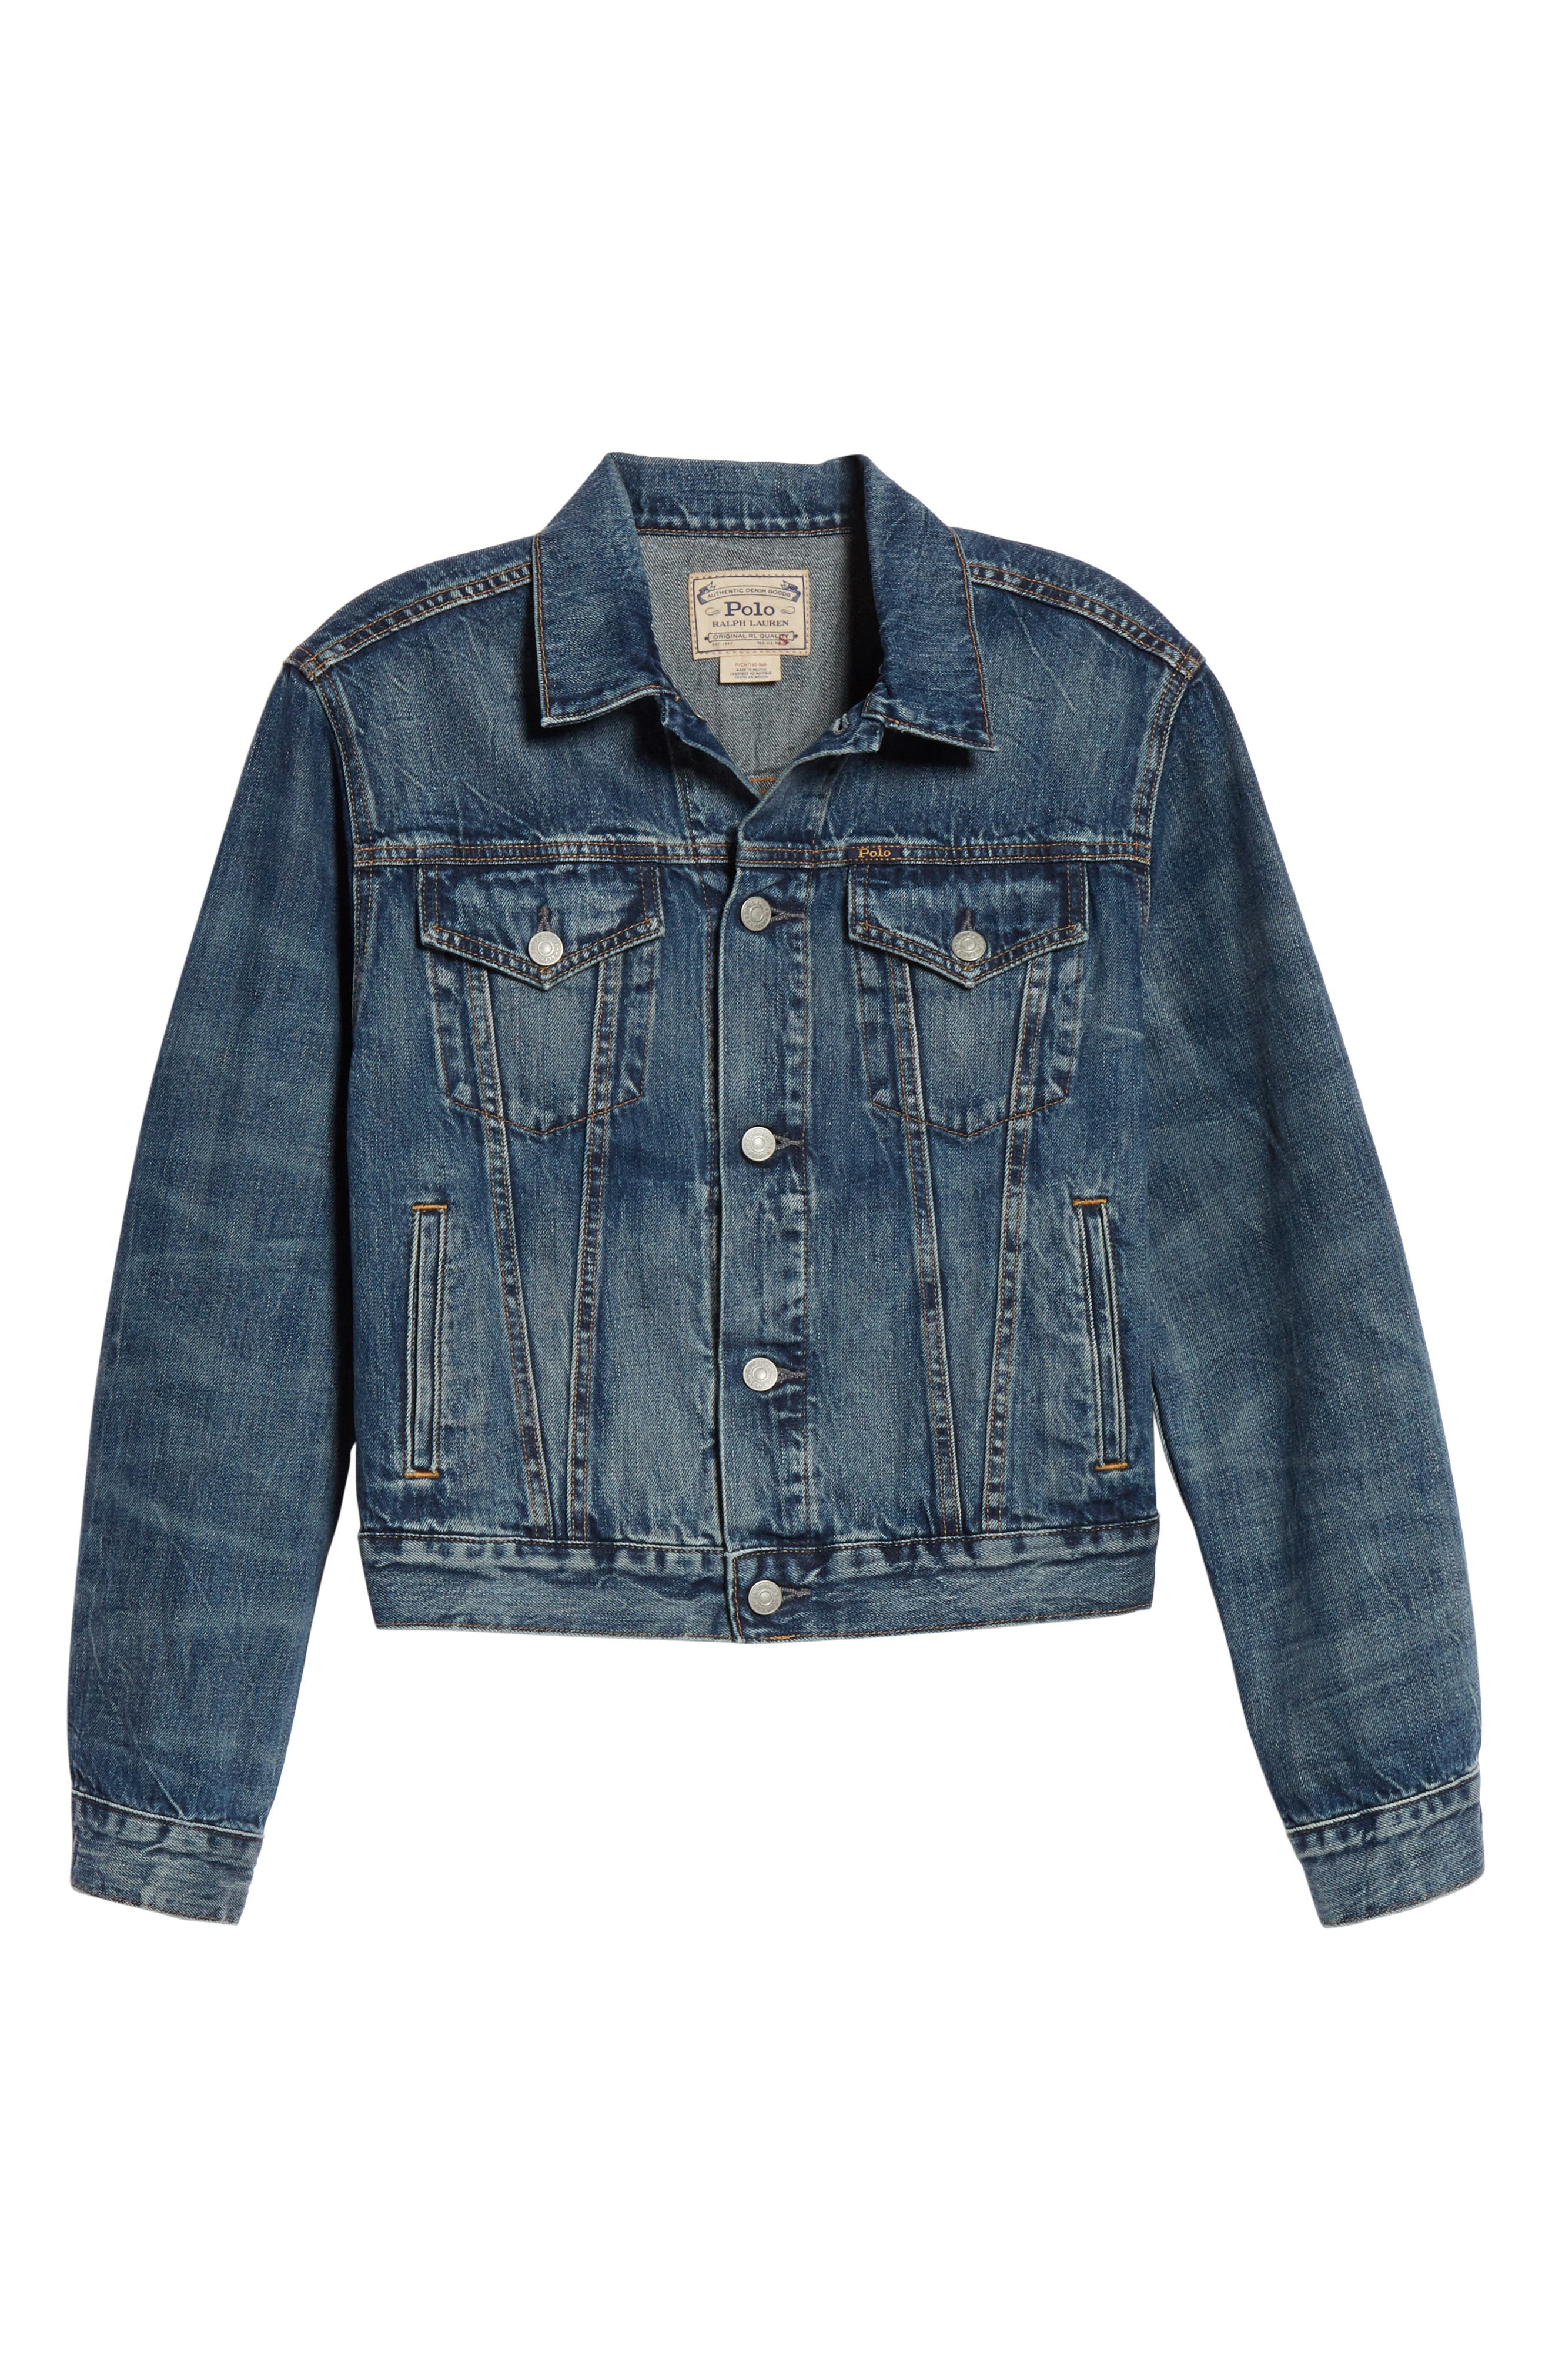 Flag Trucker Denim Jacket,                             Alternate thumbnail 6, color,                             DARK INDIGO